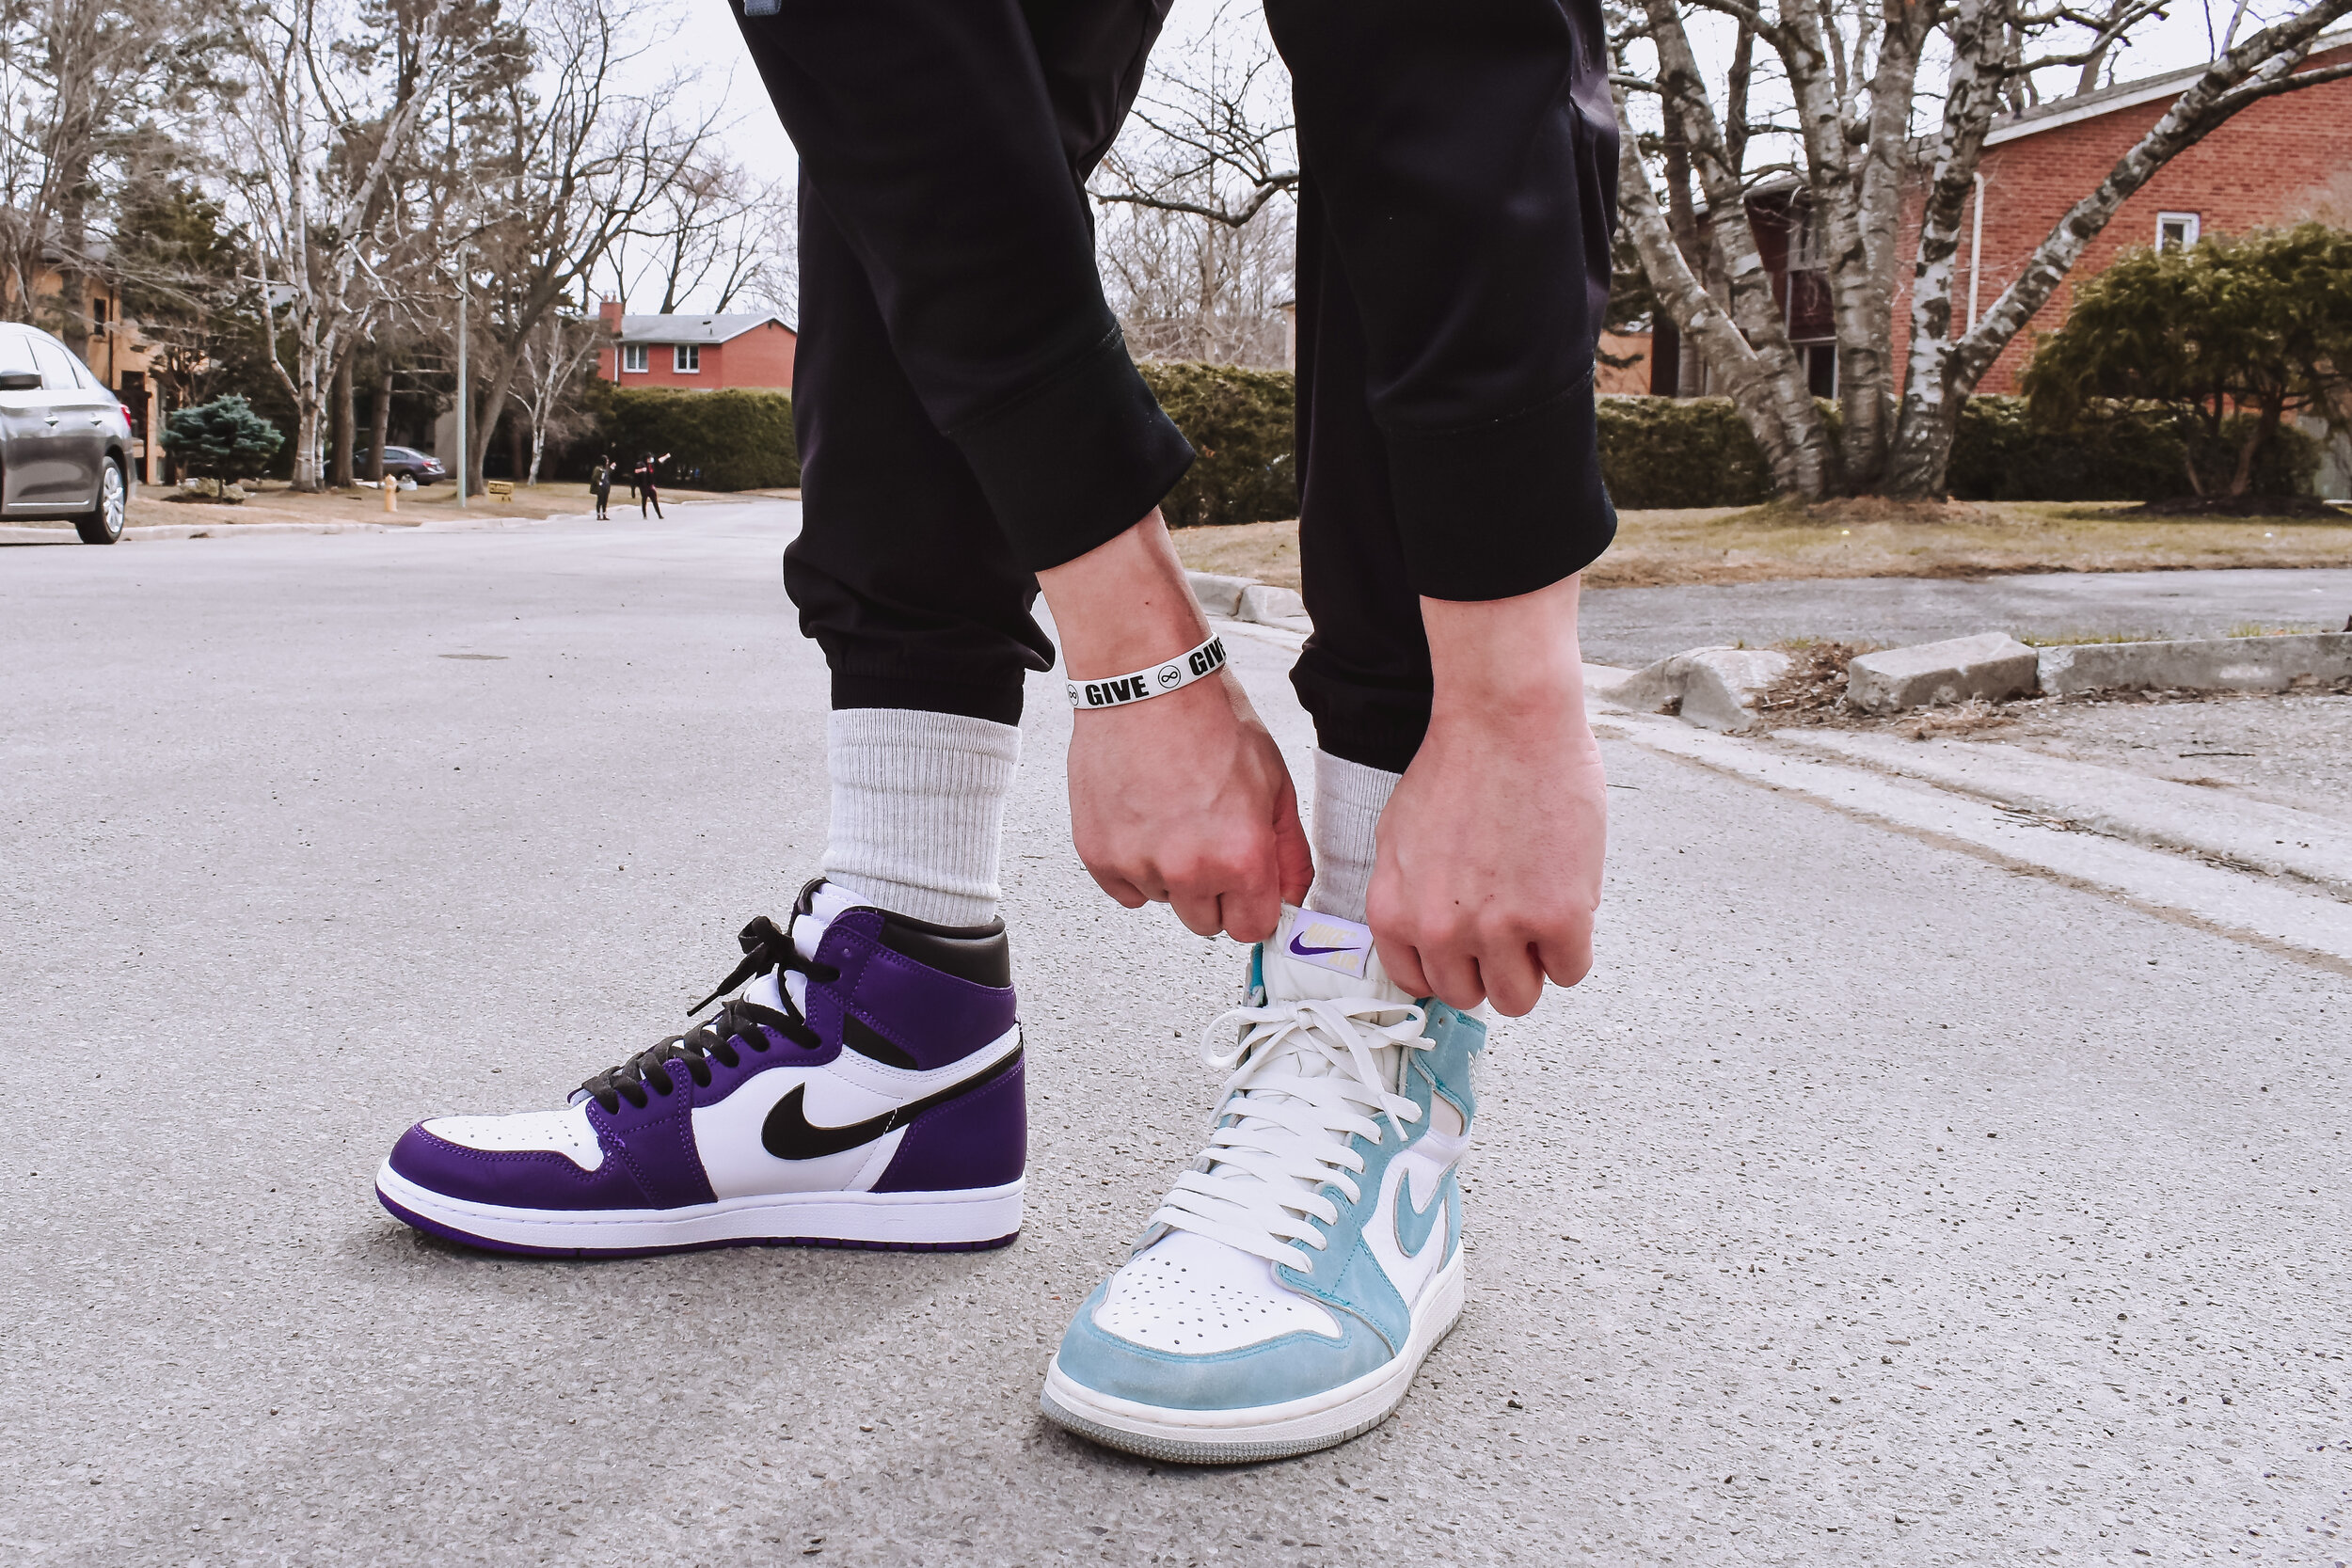 Jordan 1 Court Purple (left), the symbol of greatness and only used to be worn by royals, and Jordan 1 Turbo Green (right), paying tribute to the Charlotte, NC for hosting its first NBA All Star Game // FLEUR BOOMSMA